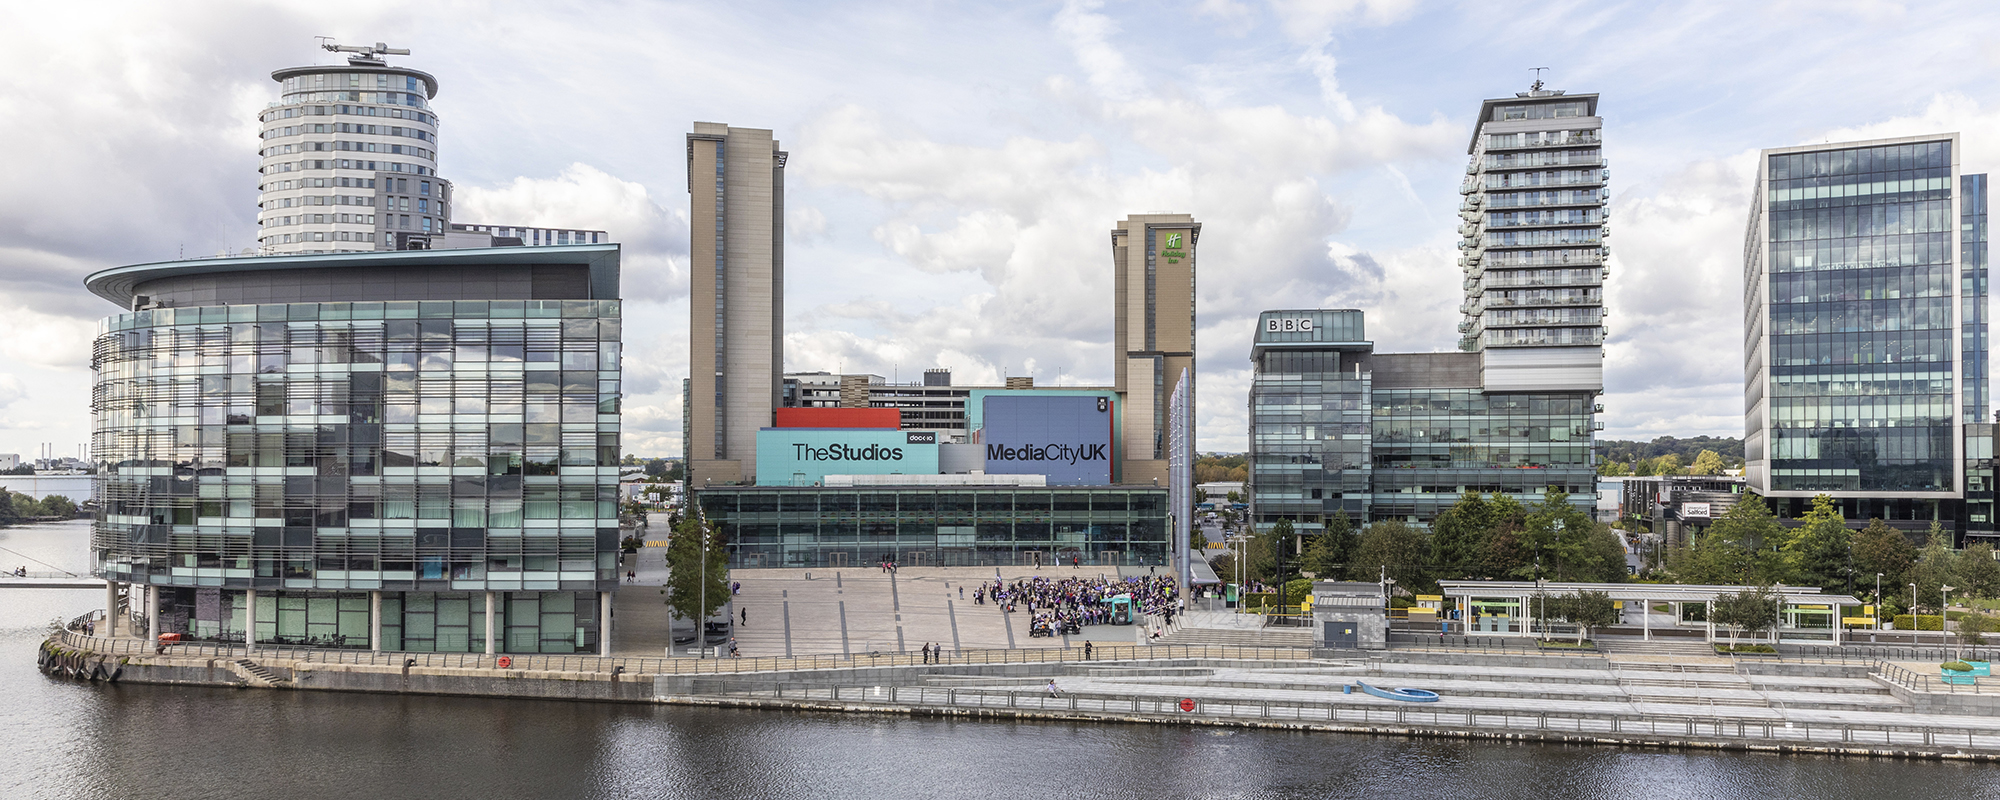 The offices of the BBC and ITV, as well as the TV studios, make up the core of MediaCityUK